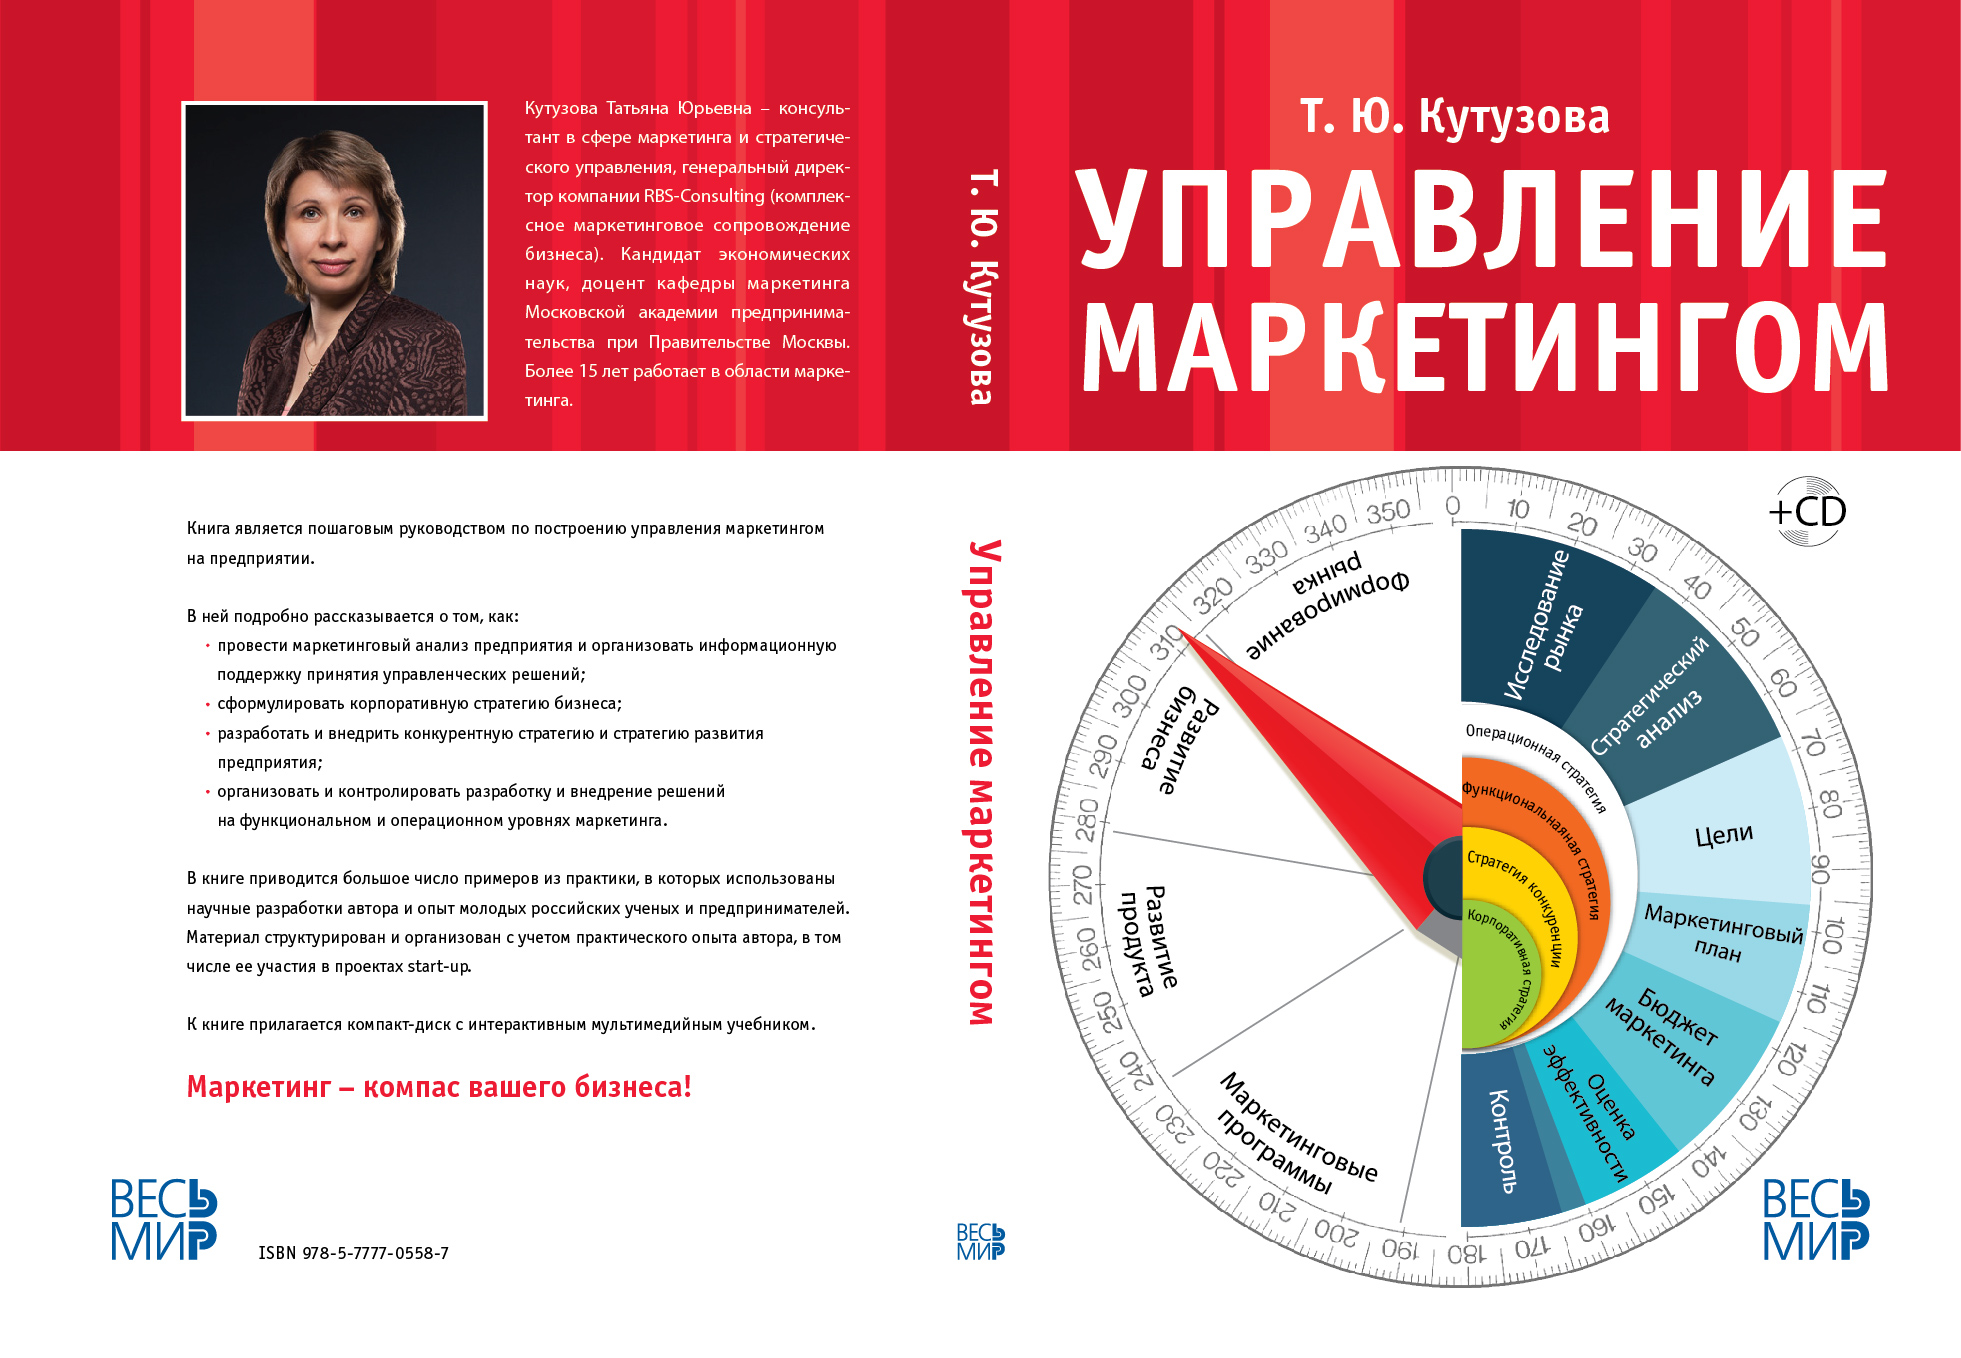 MARKETING-OBLOGKA-01